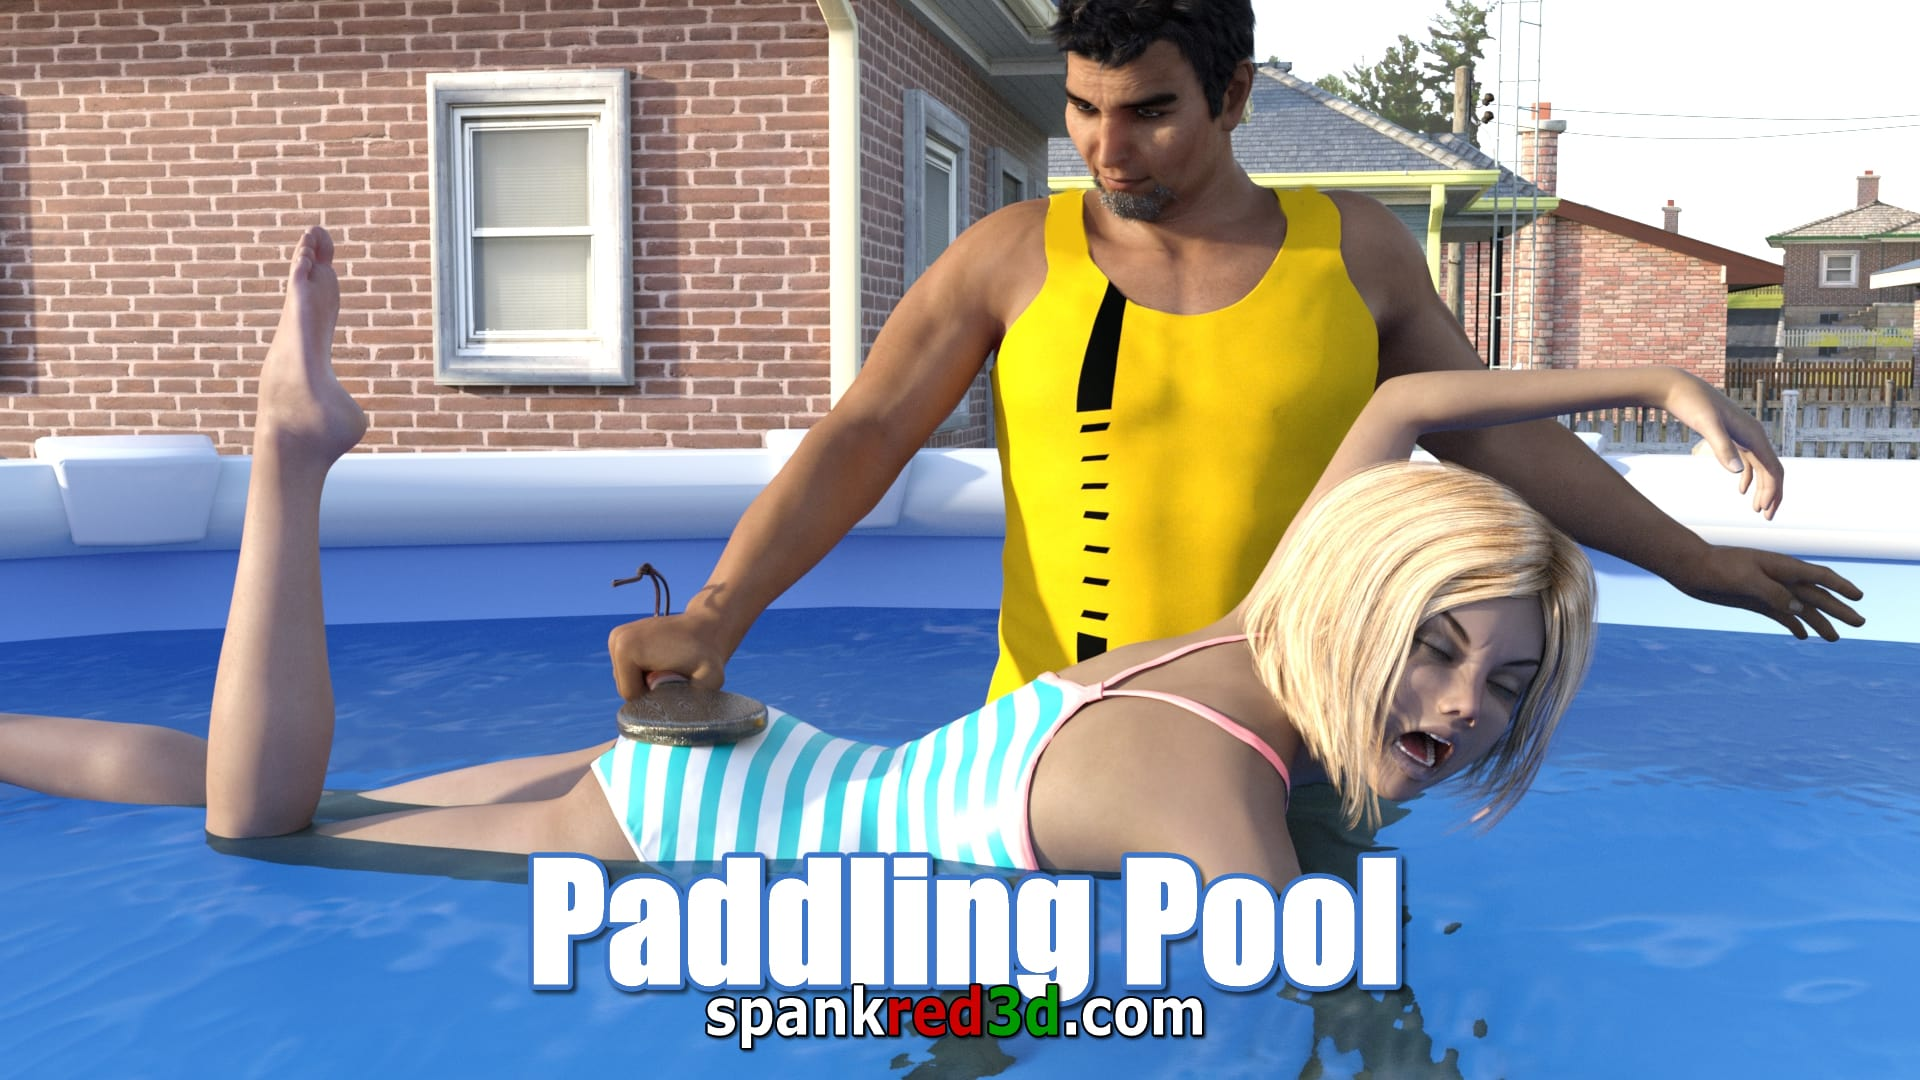 Paddling pool punishment. Hot wet bottom fun in the sun. Fun for the man with the paddle.